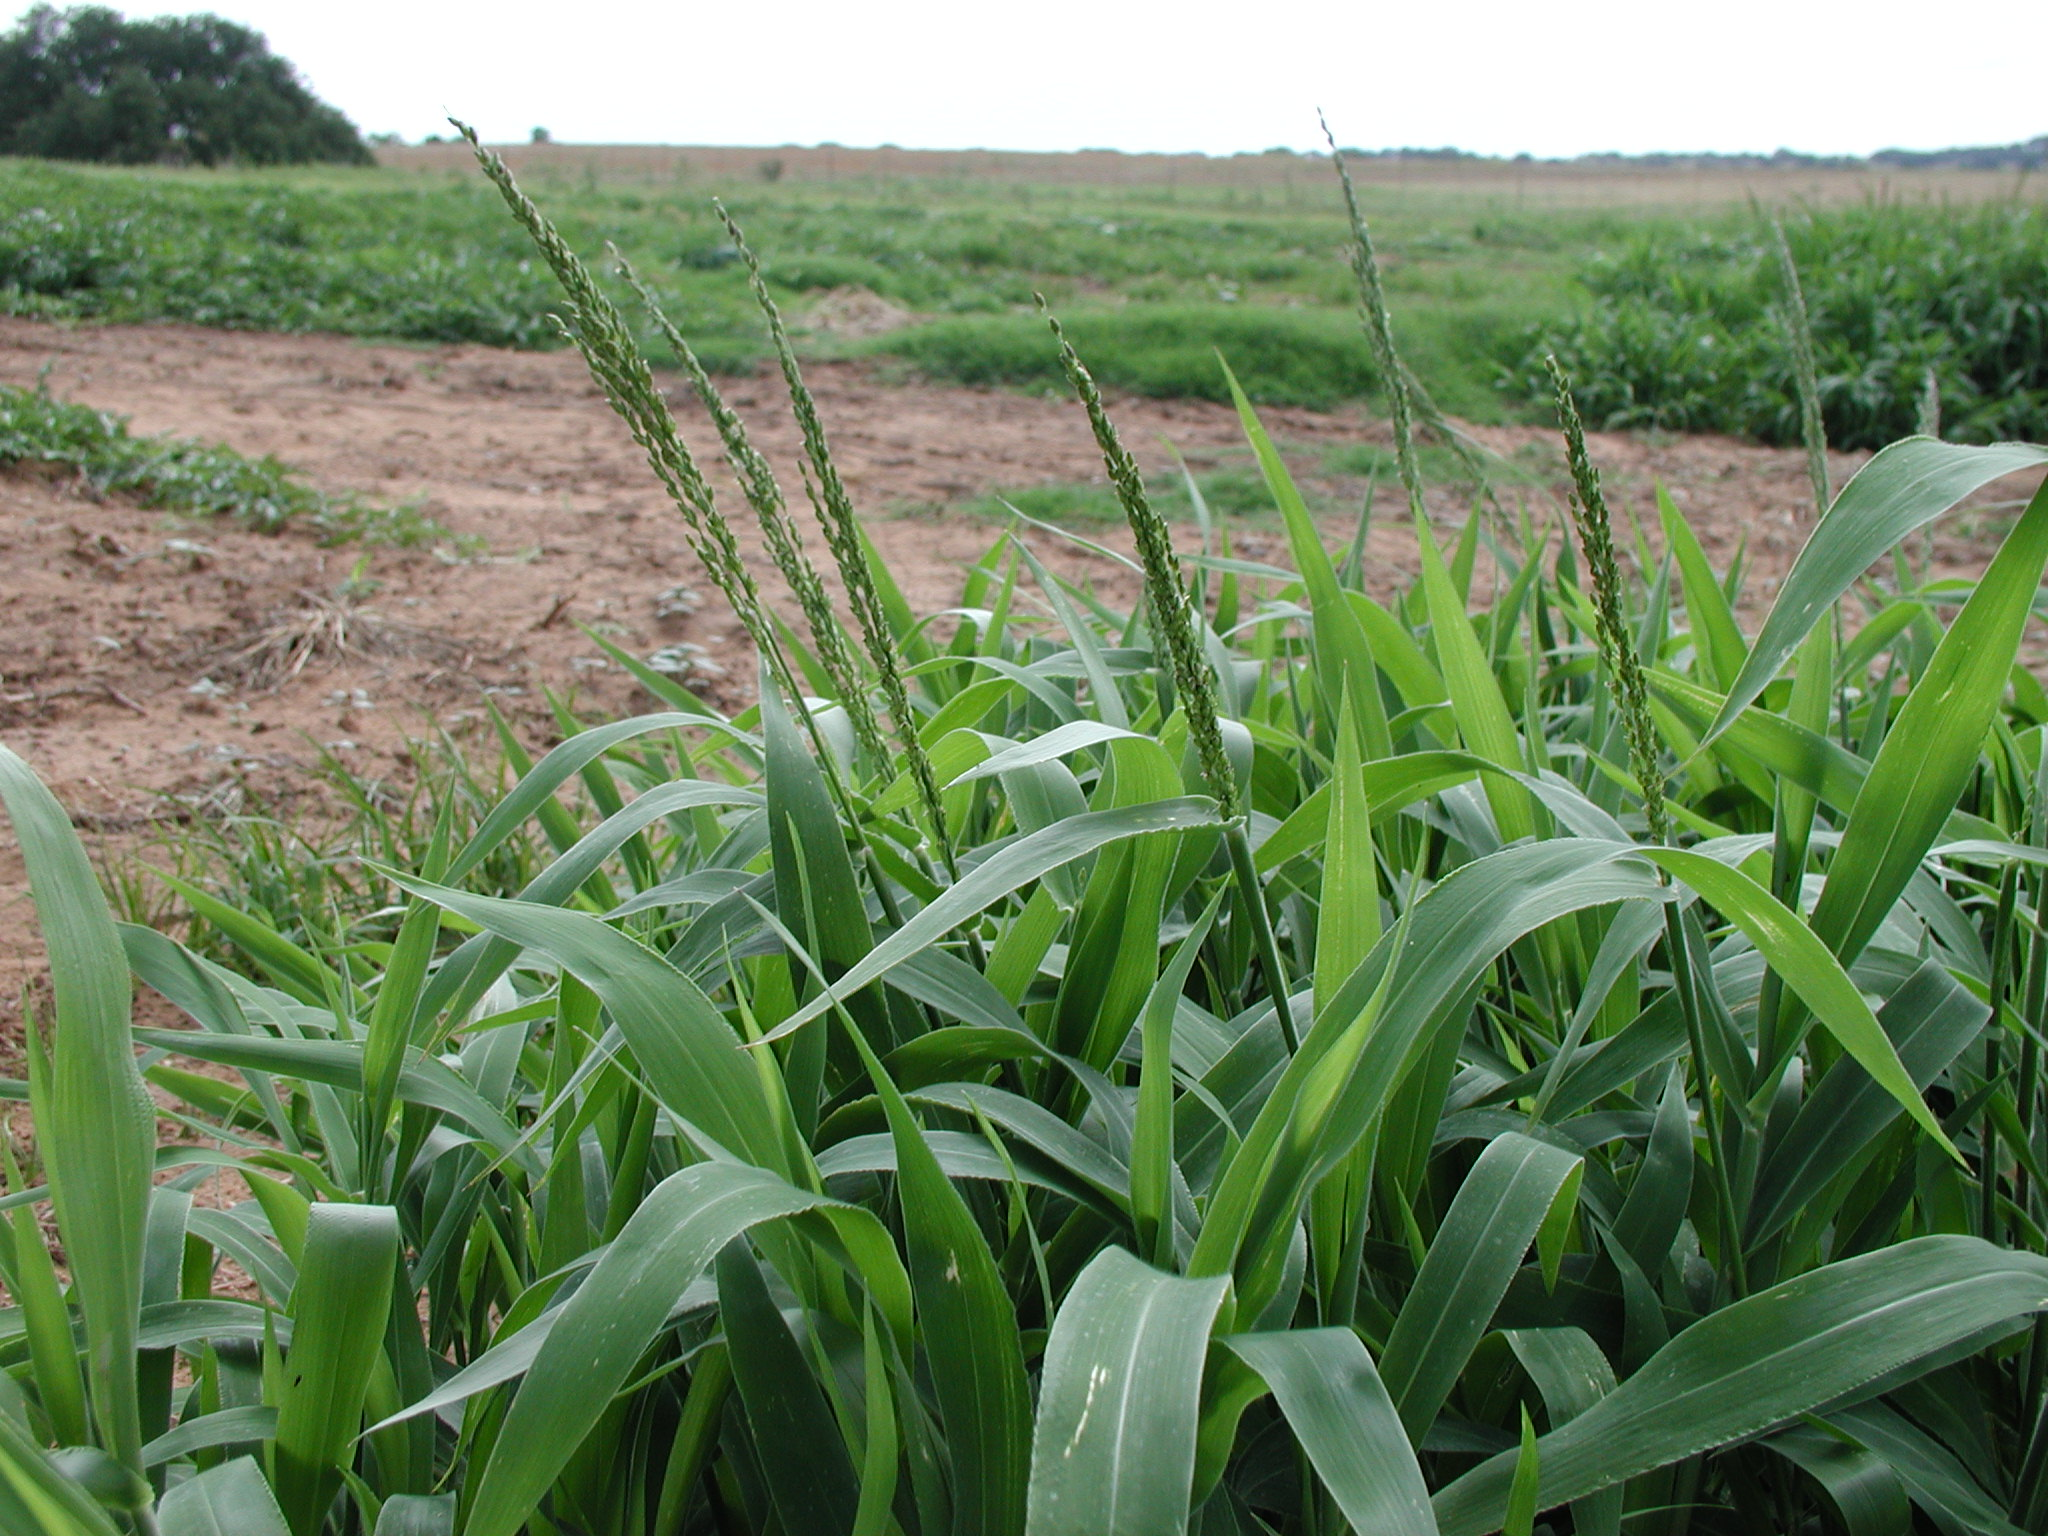 Crops Weeds Foxtail Barley Manitoba Agriculture Food And Rural PictureFoxtail Barley Seedling